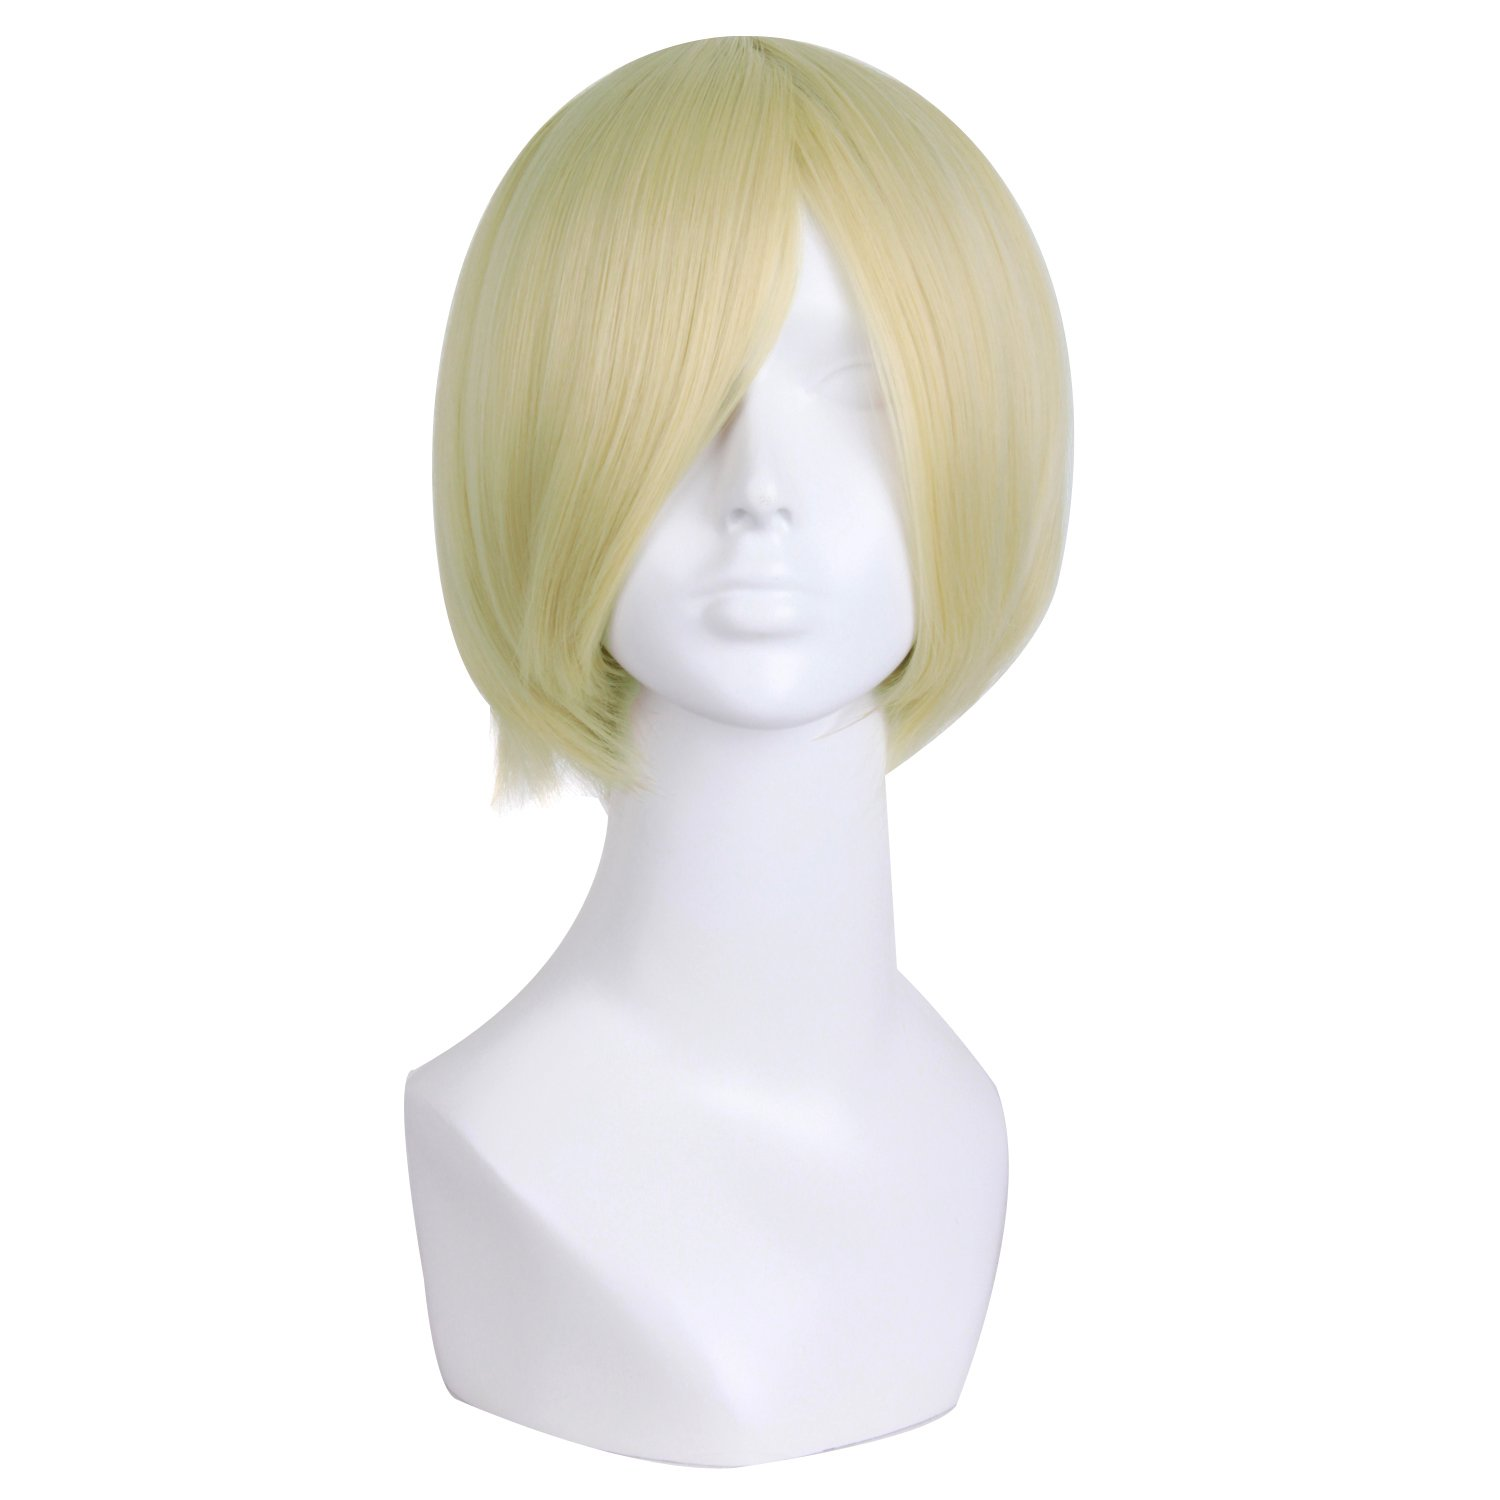 MapofBeauty 12/30cm Short Straight Cosplay Costume Wig Party Wig (Mixed Blue)